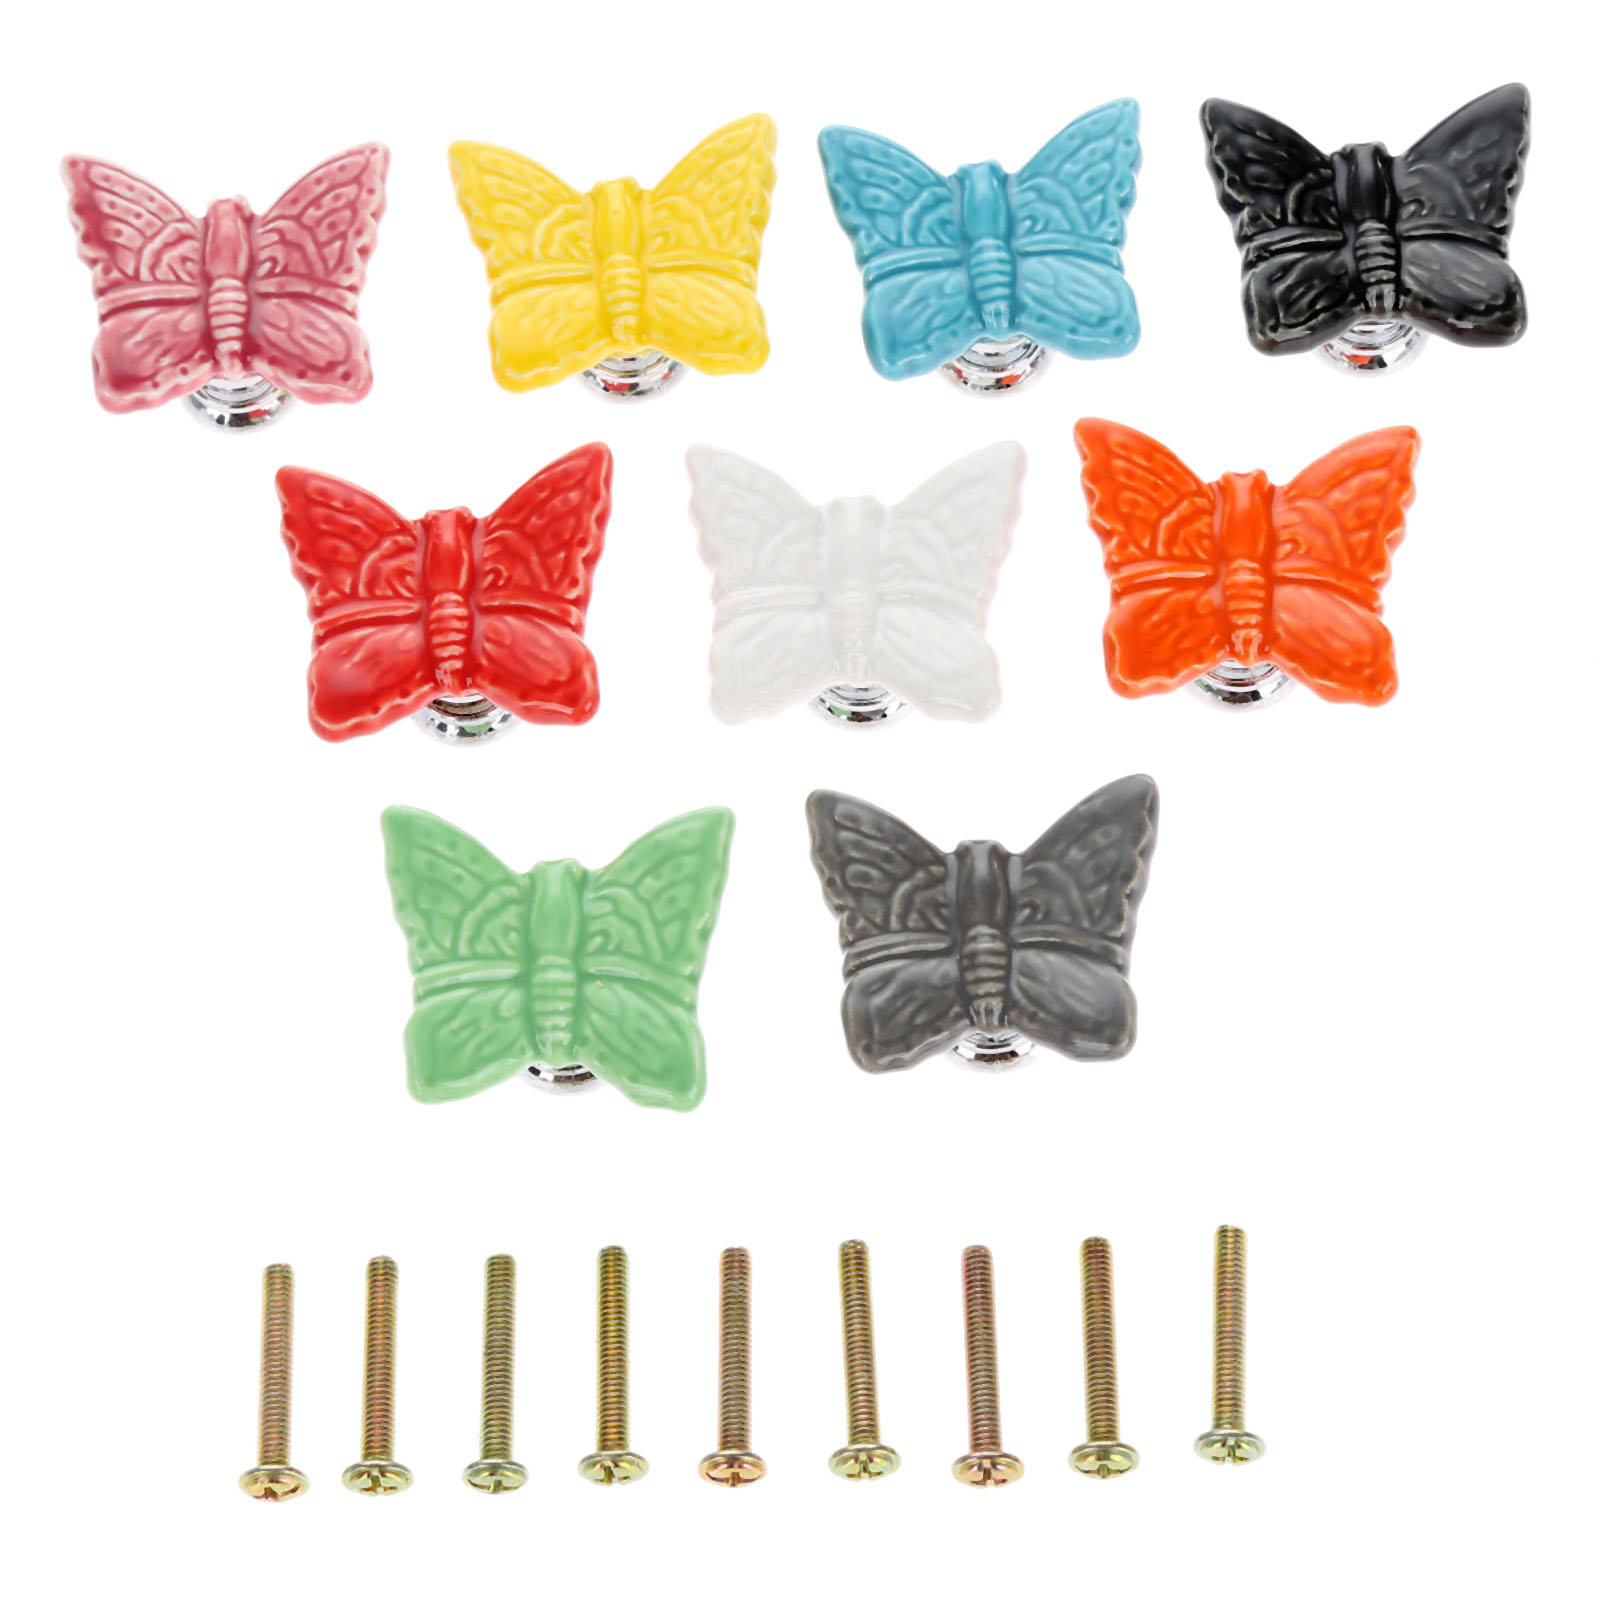 DRELD 1Pc Furniture Handles Butterfly Cabinet Knobs and Handles Ceramic Door Knob Cupboard Dresser Drawer Kitchen Pull HandleDRELD 1Pc Furniture Handles Butterfly Cabinet Knobs and Handles Ceramic Door Knob Cupboard Dresser Drawer Kitchen Pull Handle